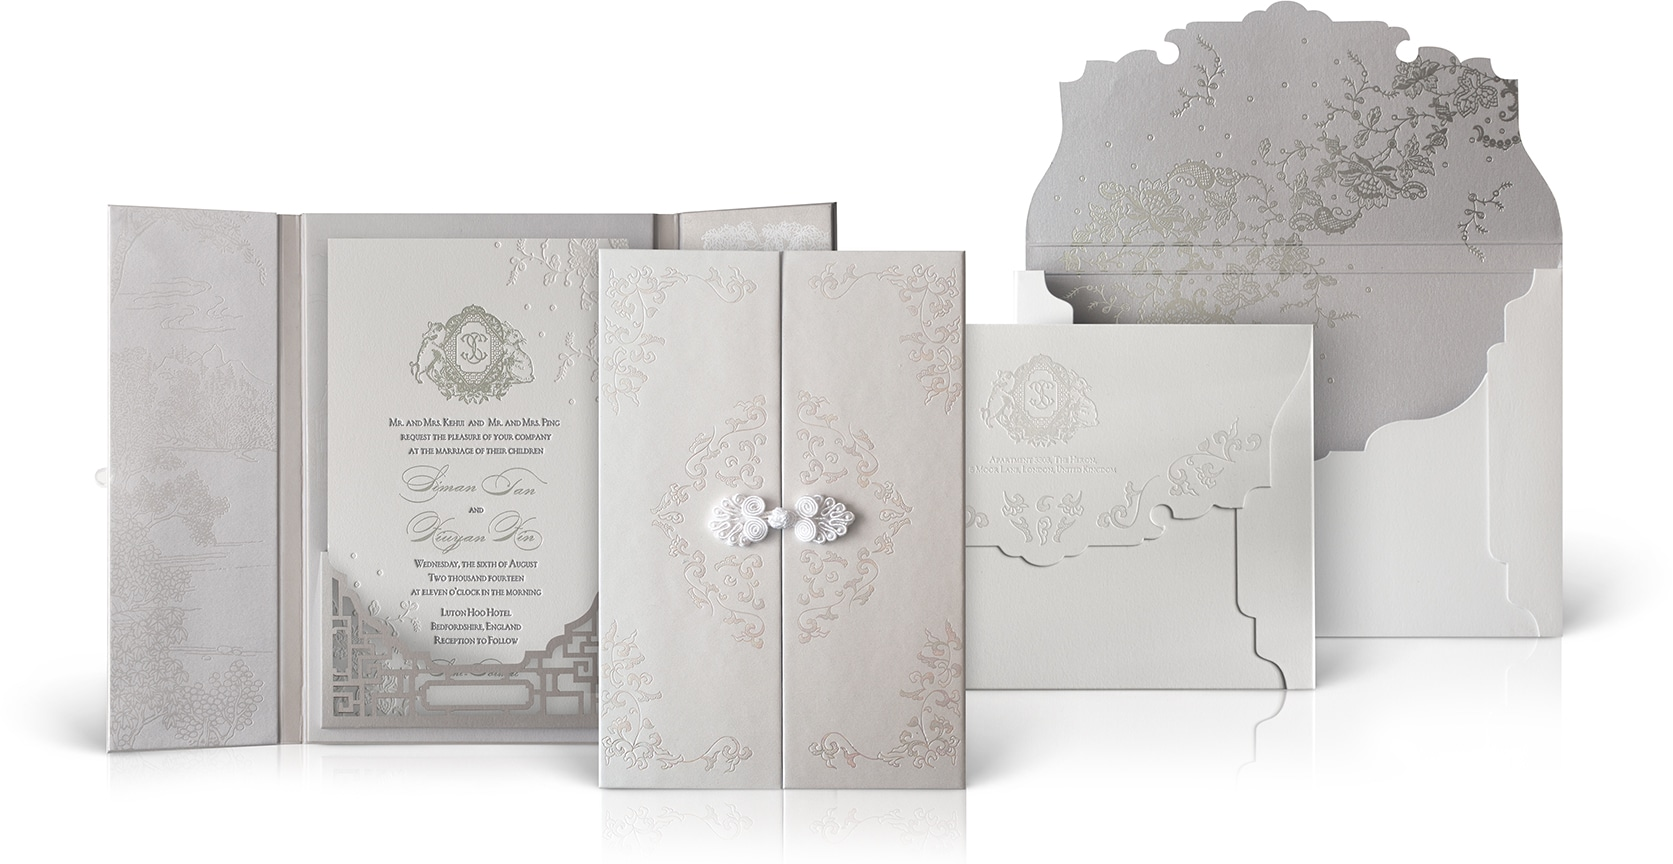 Luton Hoo Hotel wedding invitation